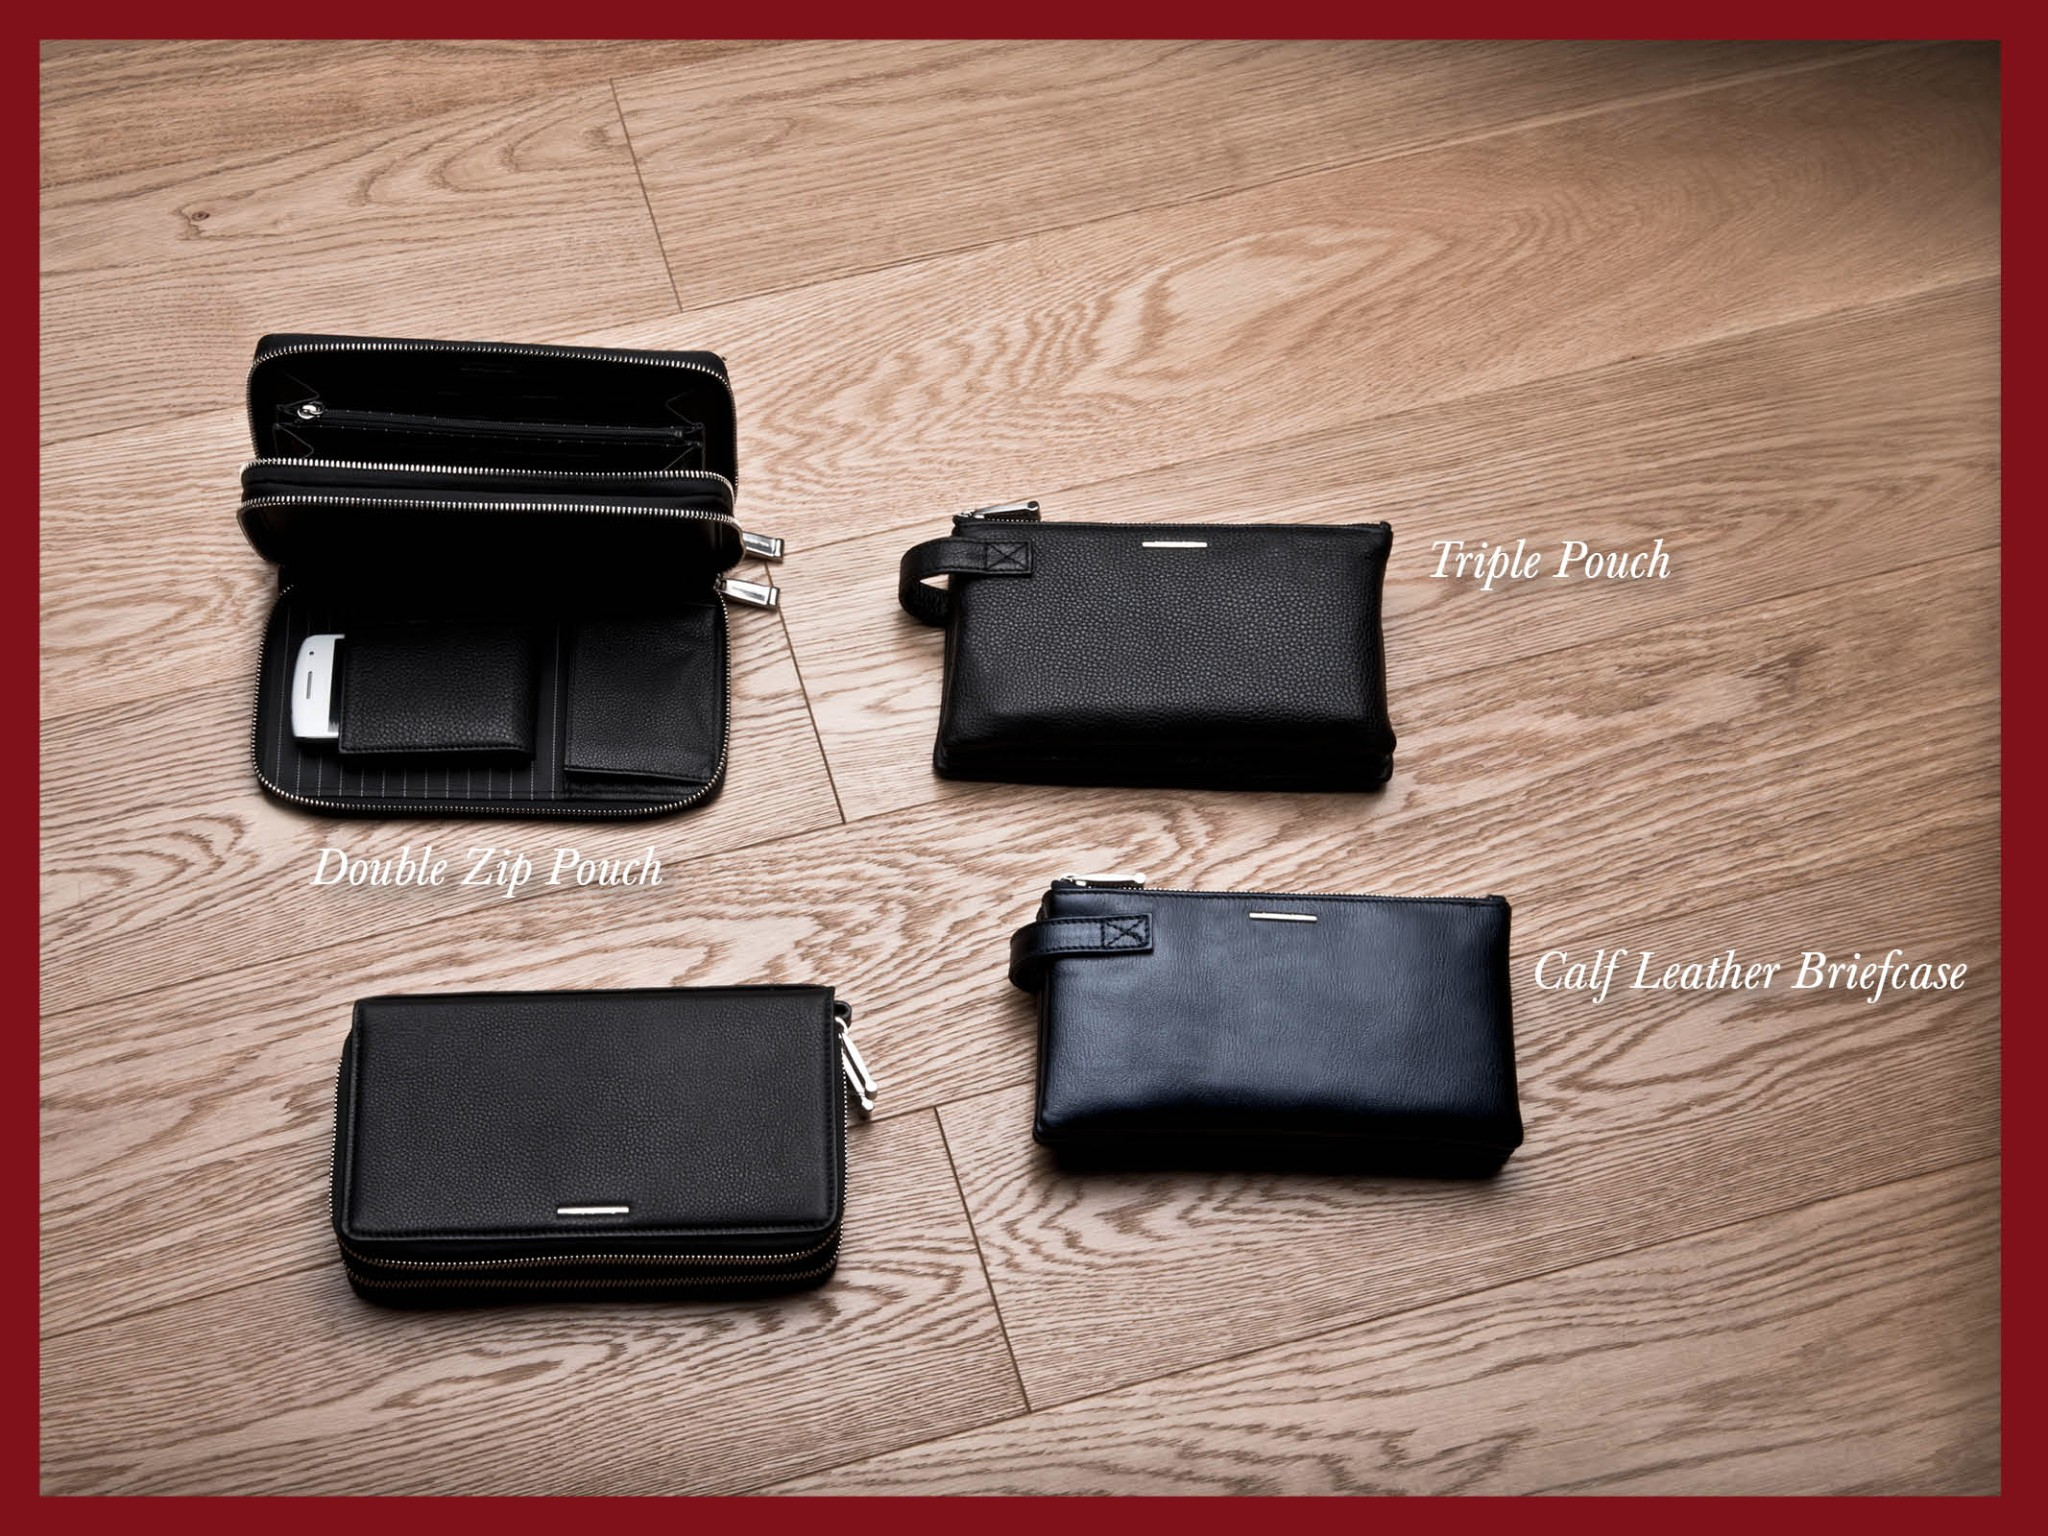 Photo: Ermenegildo Zegna - Holiday Season Selection - A refined line of zip pouches for your business. Shop at http://bit.ly/X47GwN